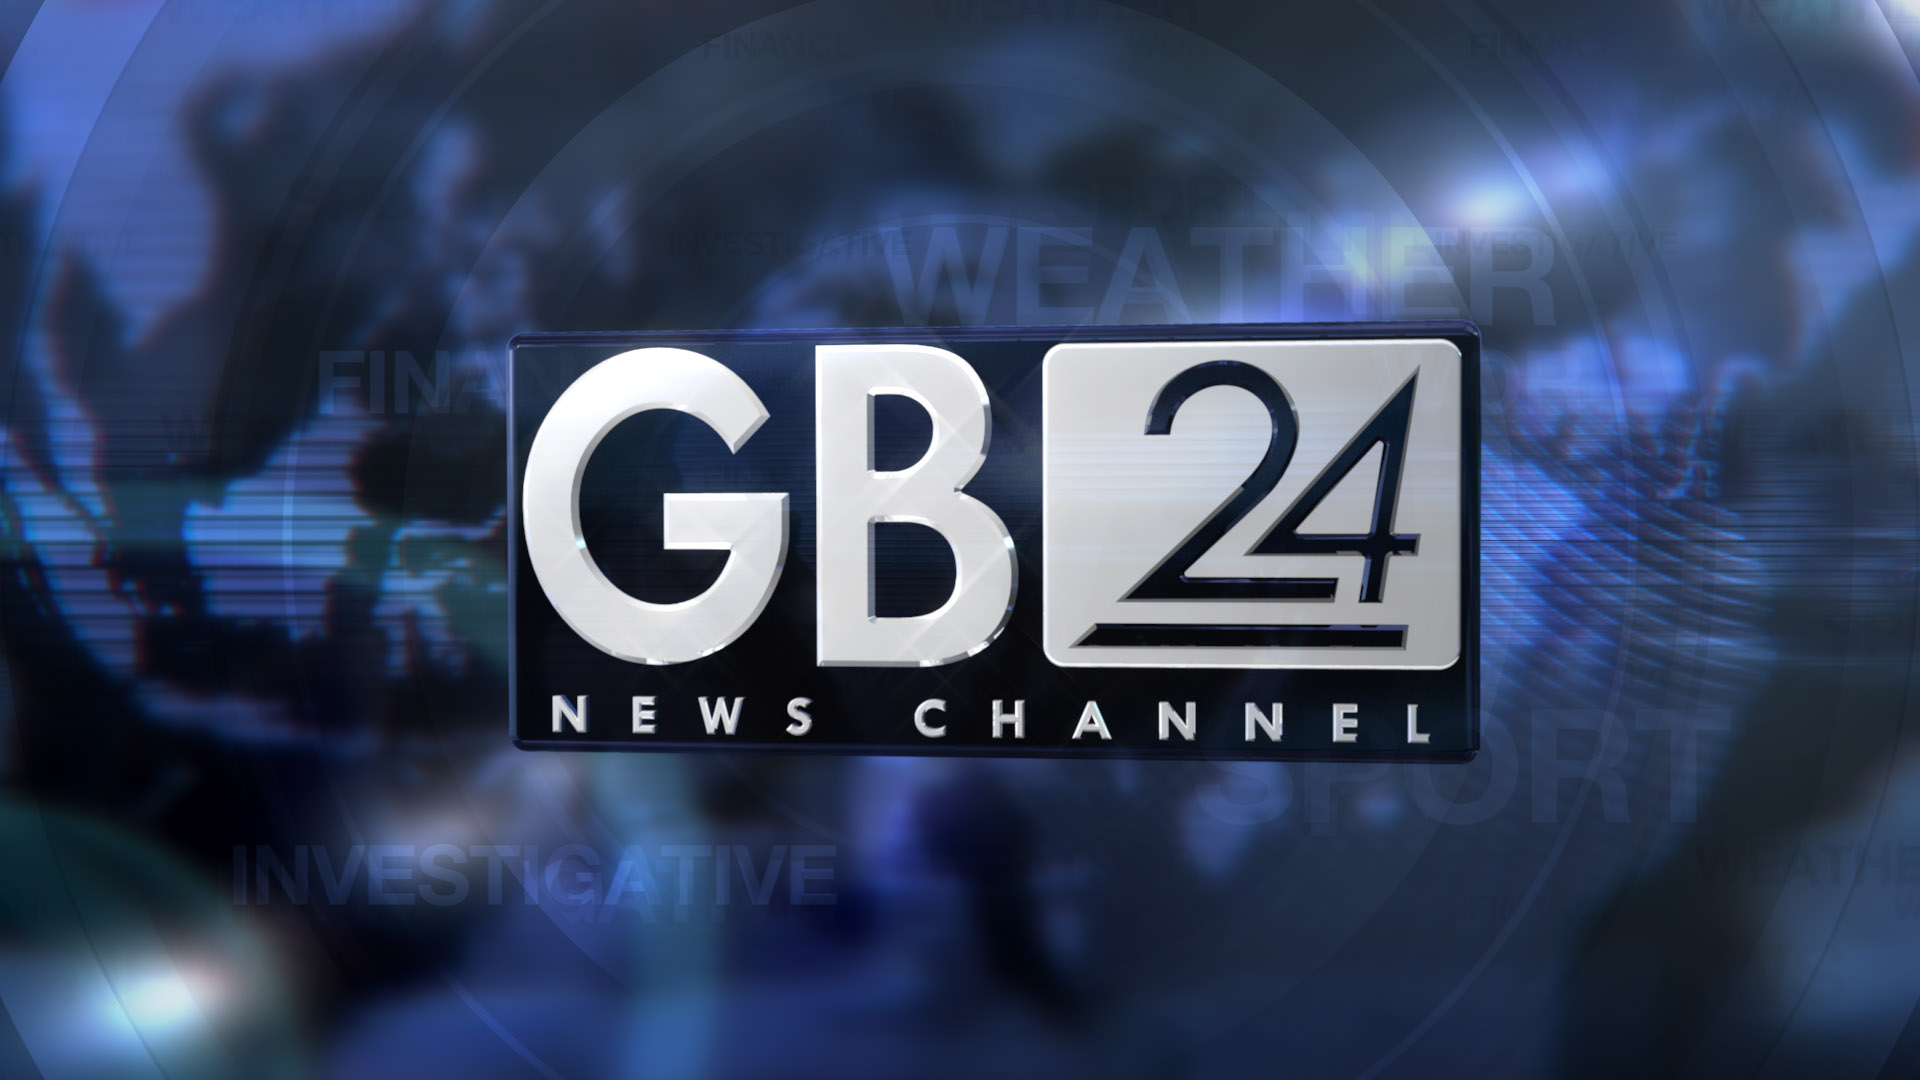 GB24 News Channel Logo